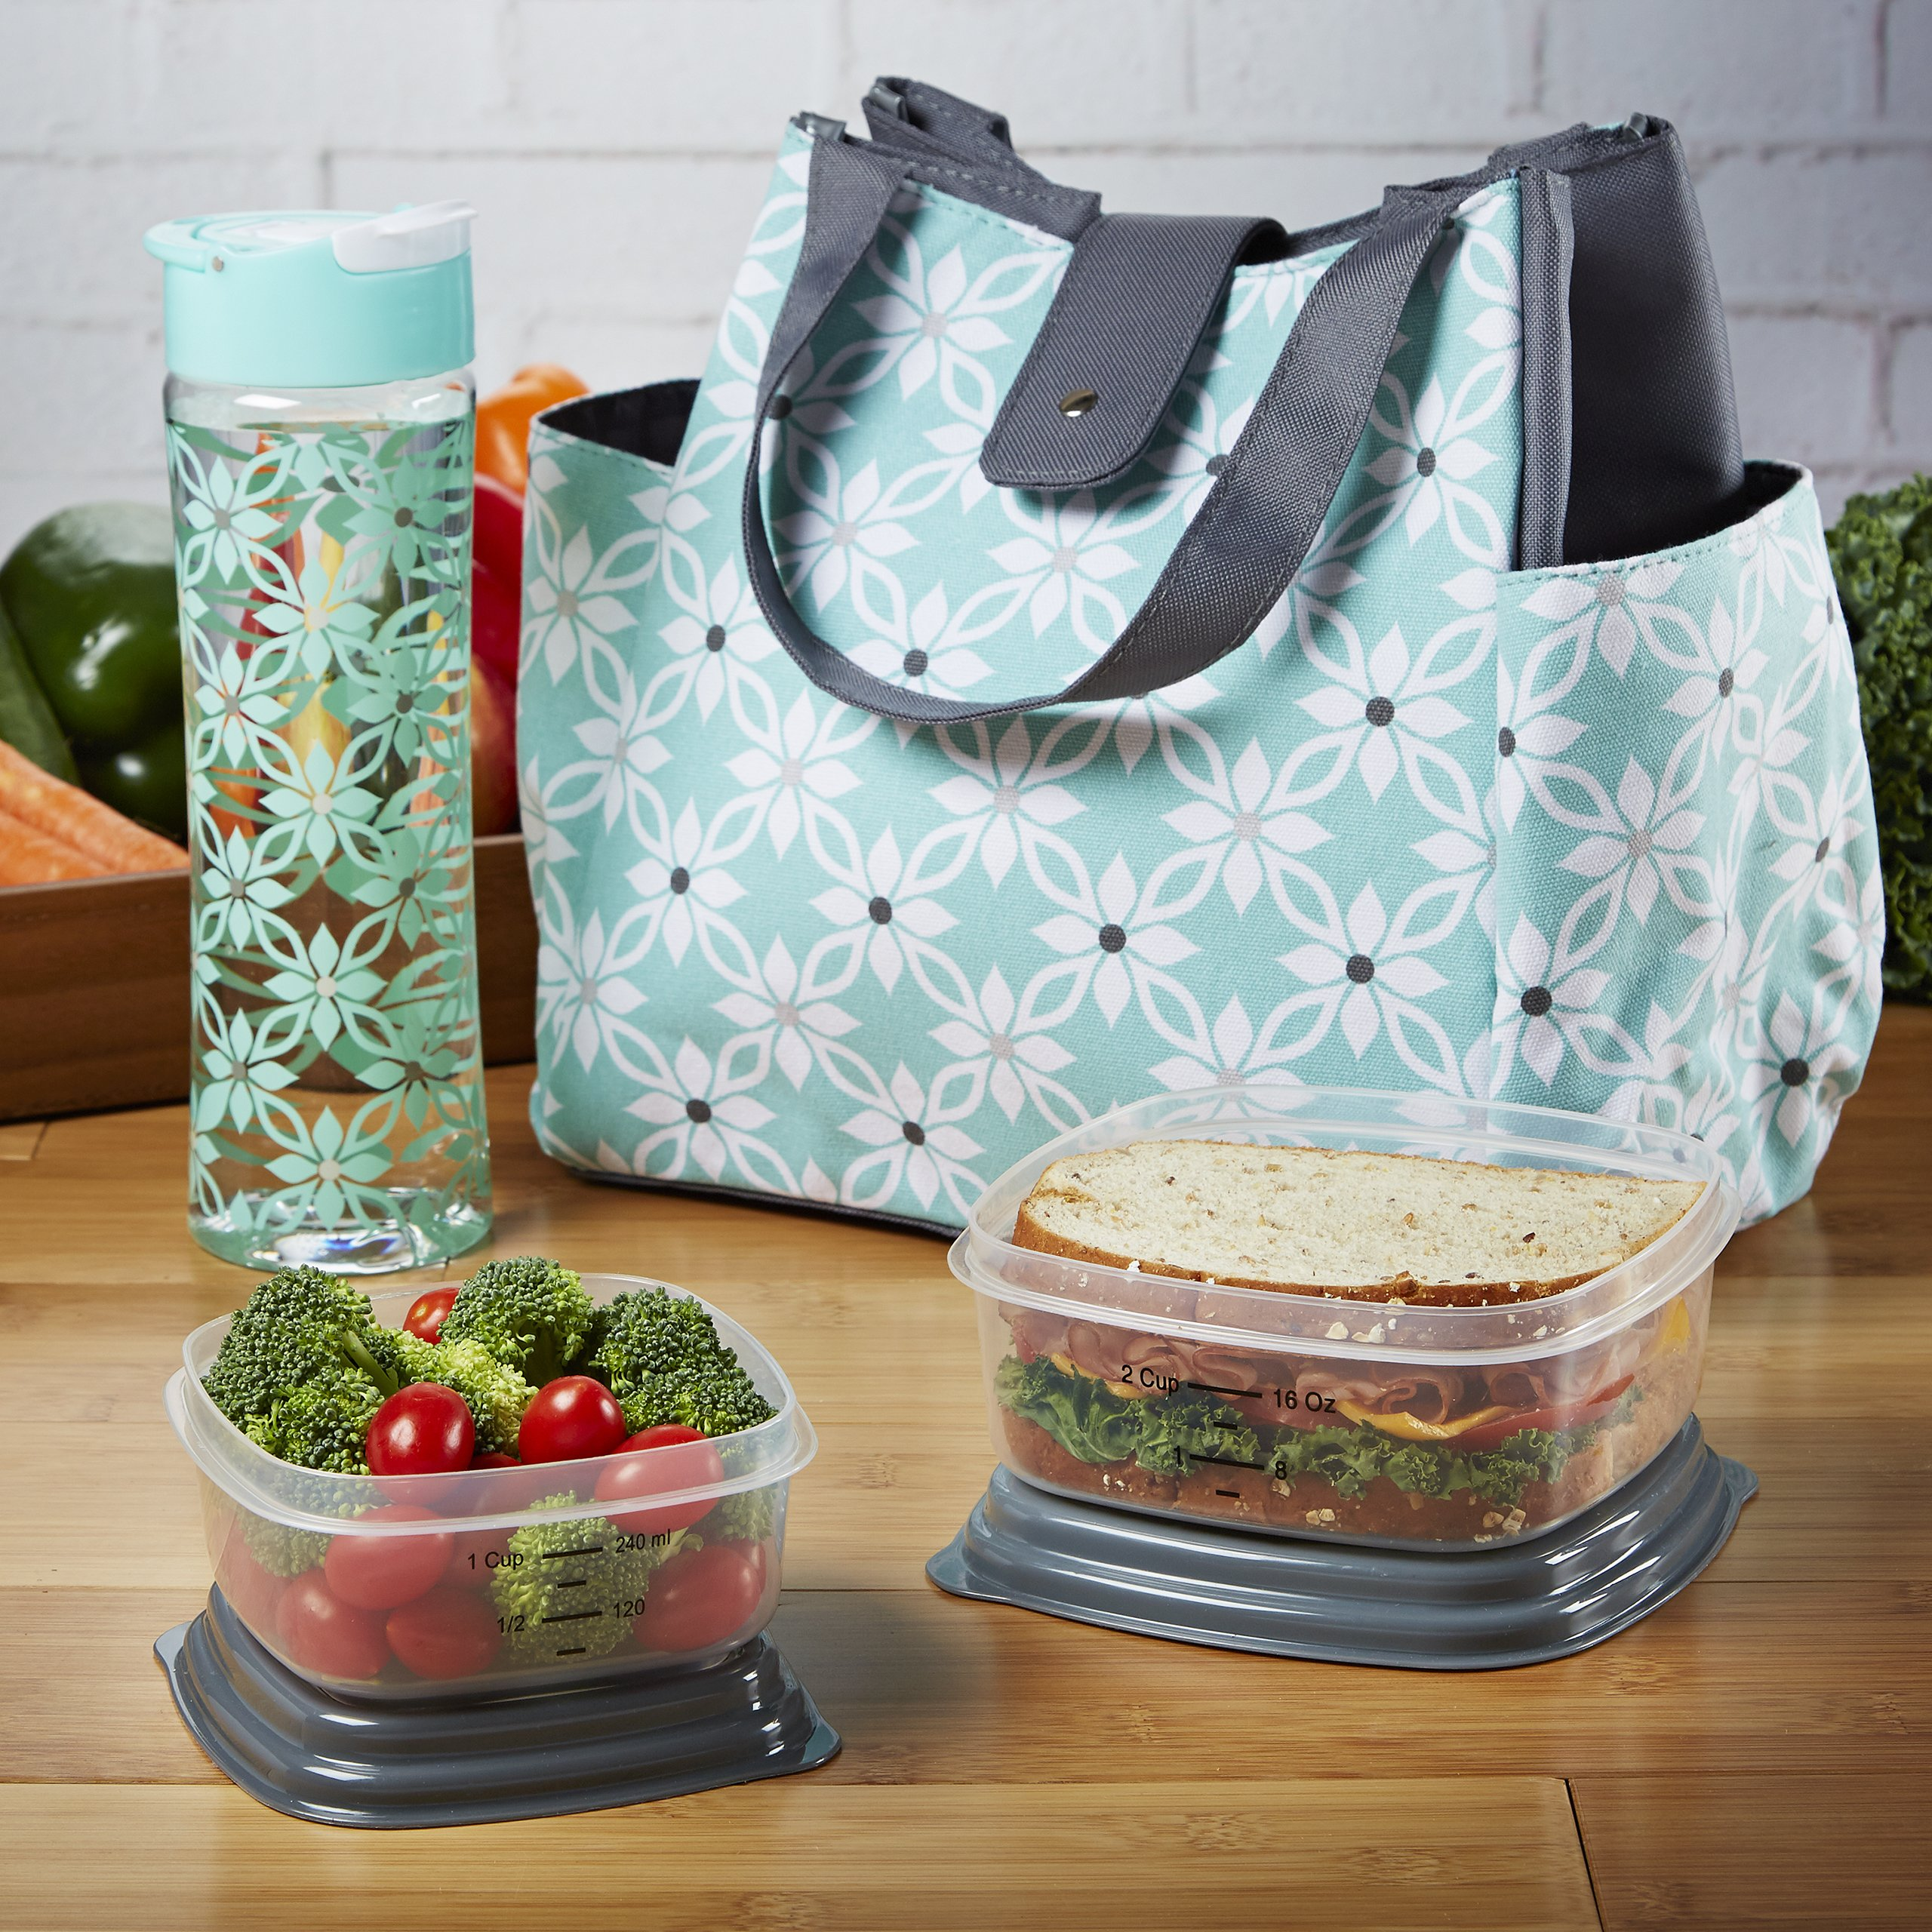 9828cc744db4 Details about Fit Fresh Women's Westport Insulated Lunch Bag with Matching  Reusable Container